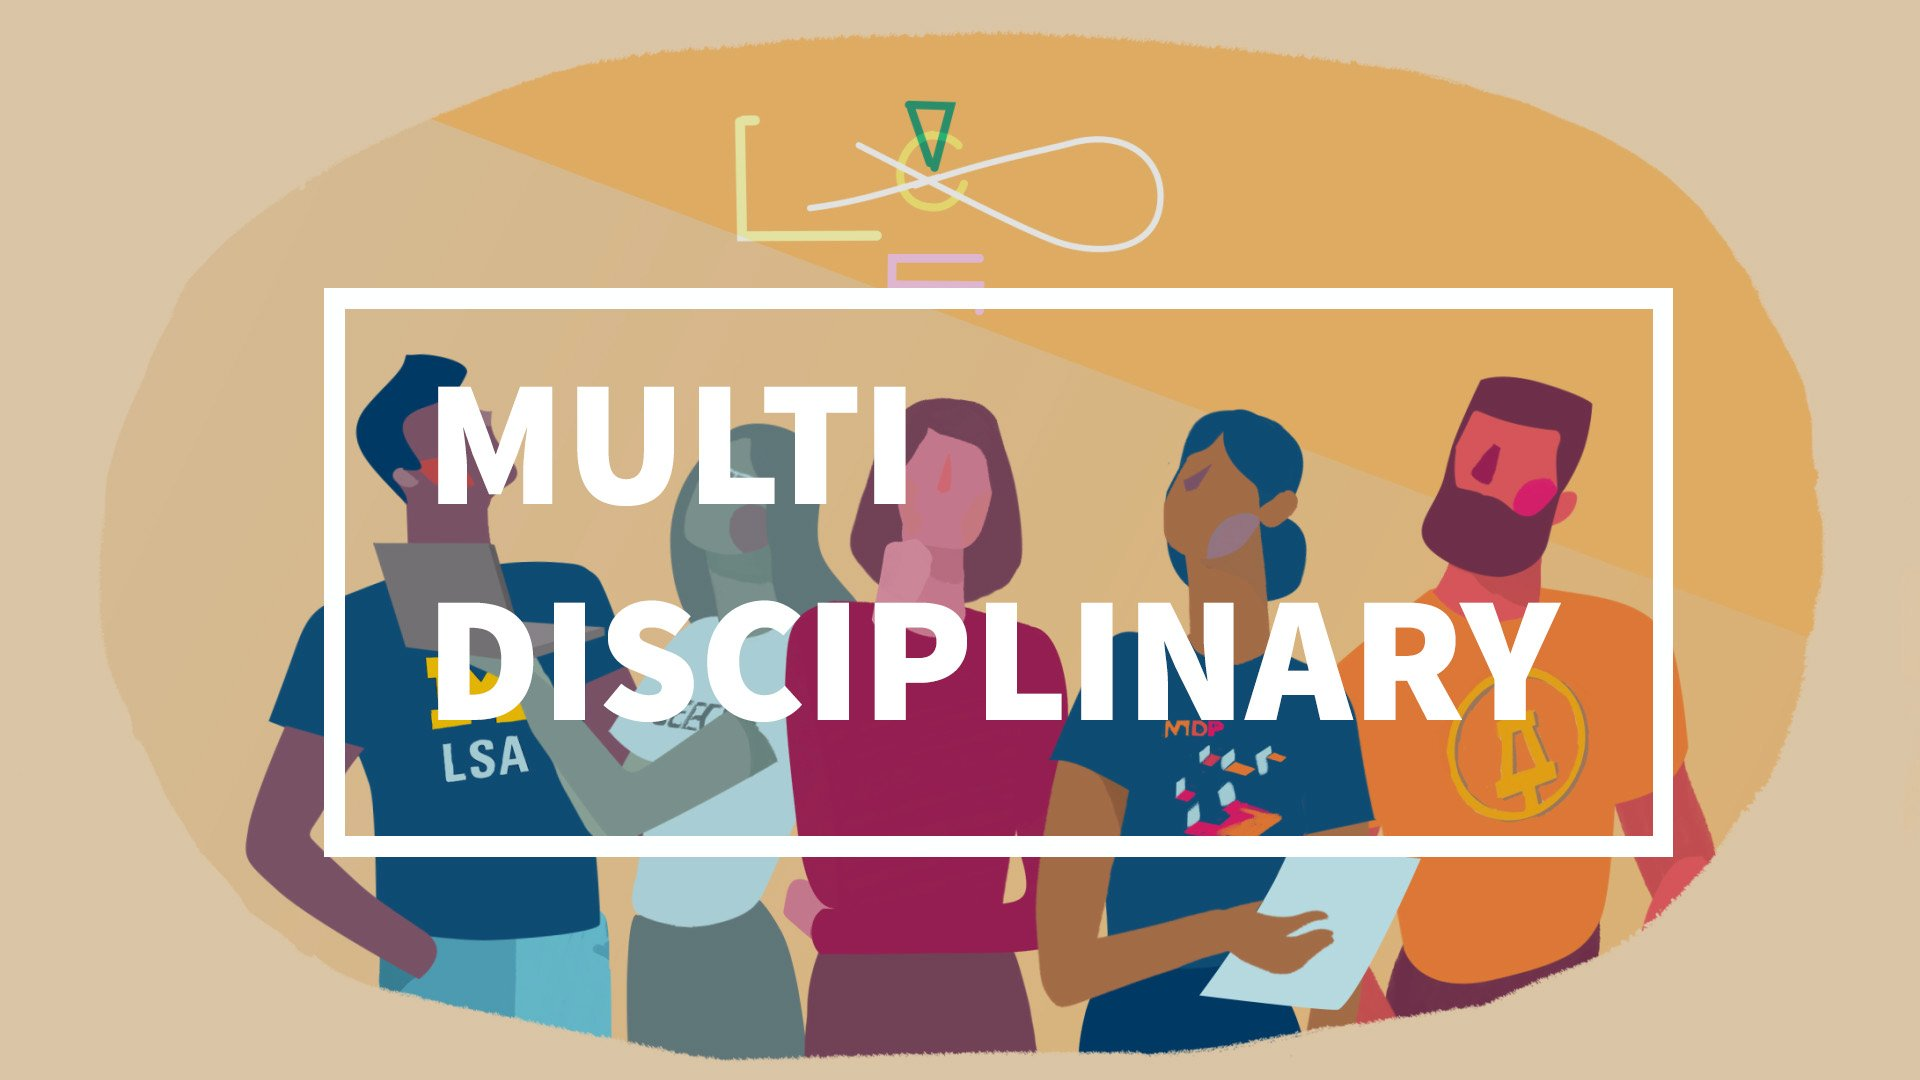 How can we be a multidisciplinary person in 5 Basic Steps  in the 21st Century?